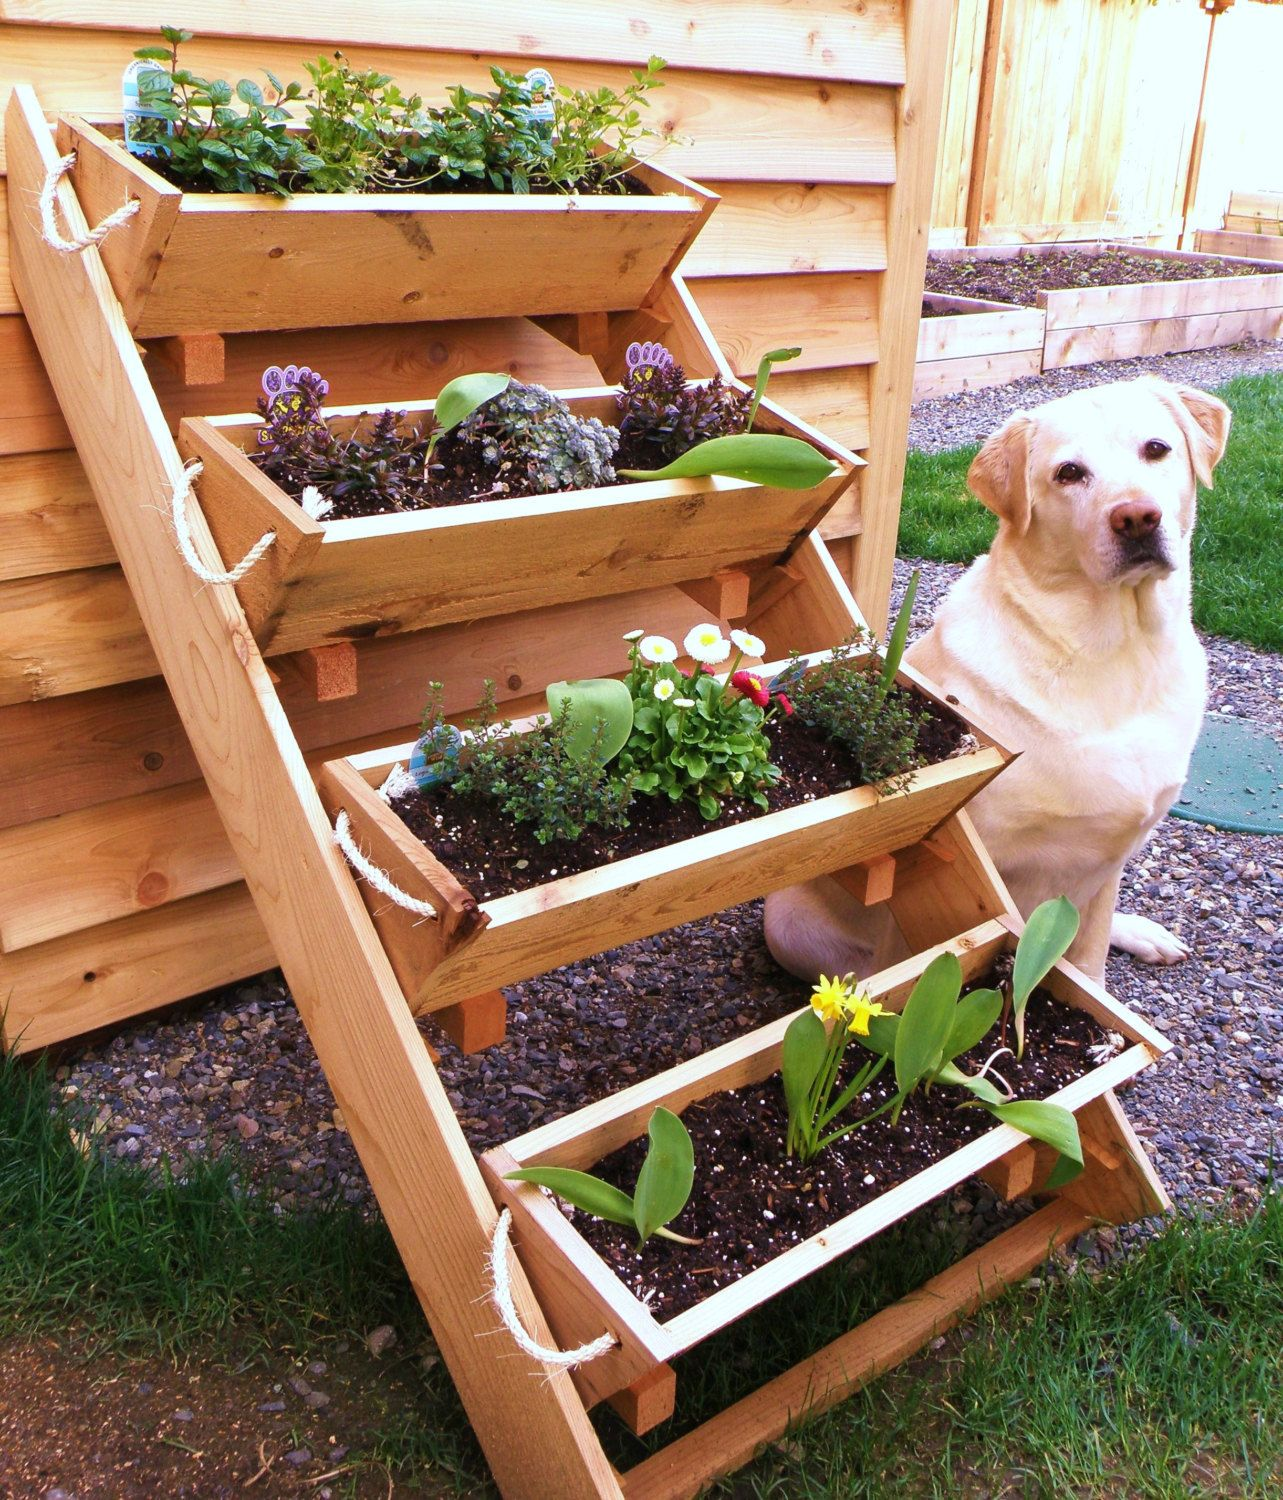 Vertical Herb Garden Ideas: 36 4 Large Planters Raised Bed Vegetable Garden For Herb